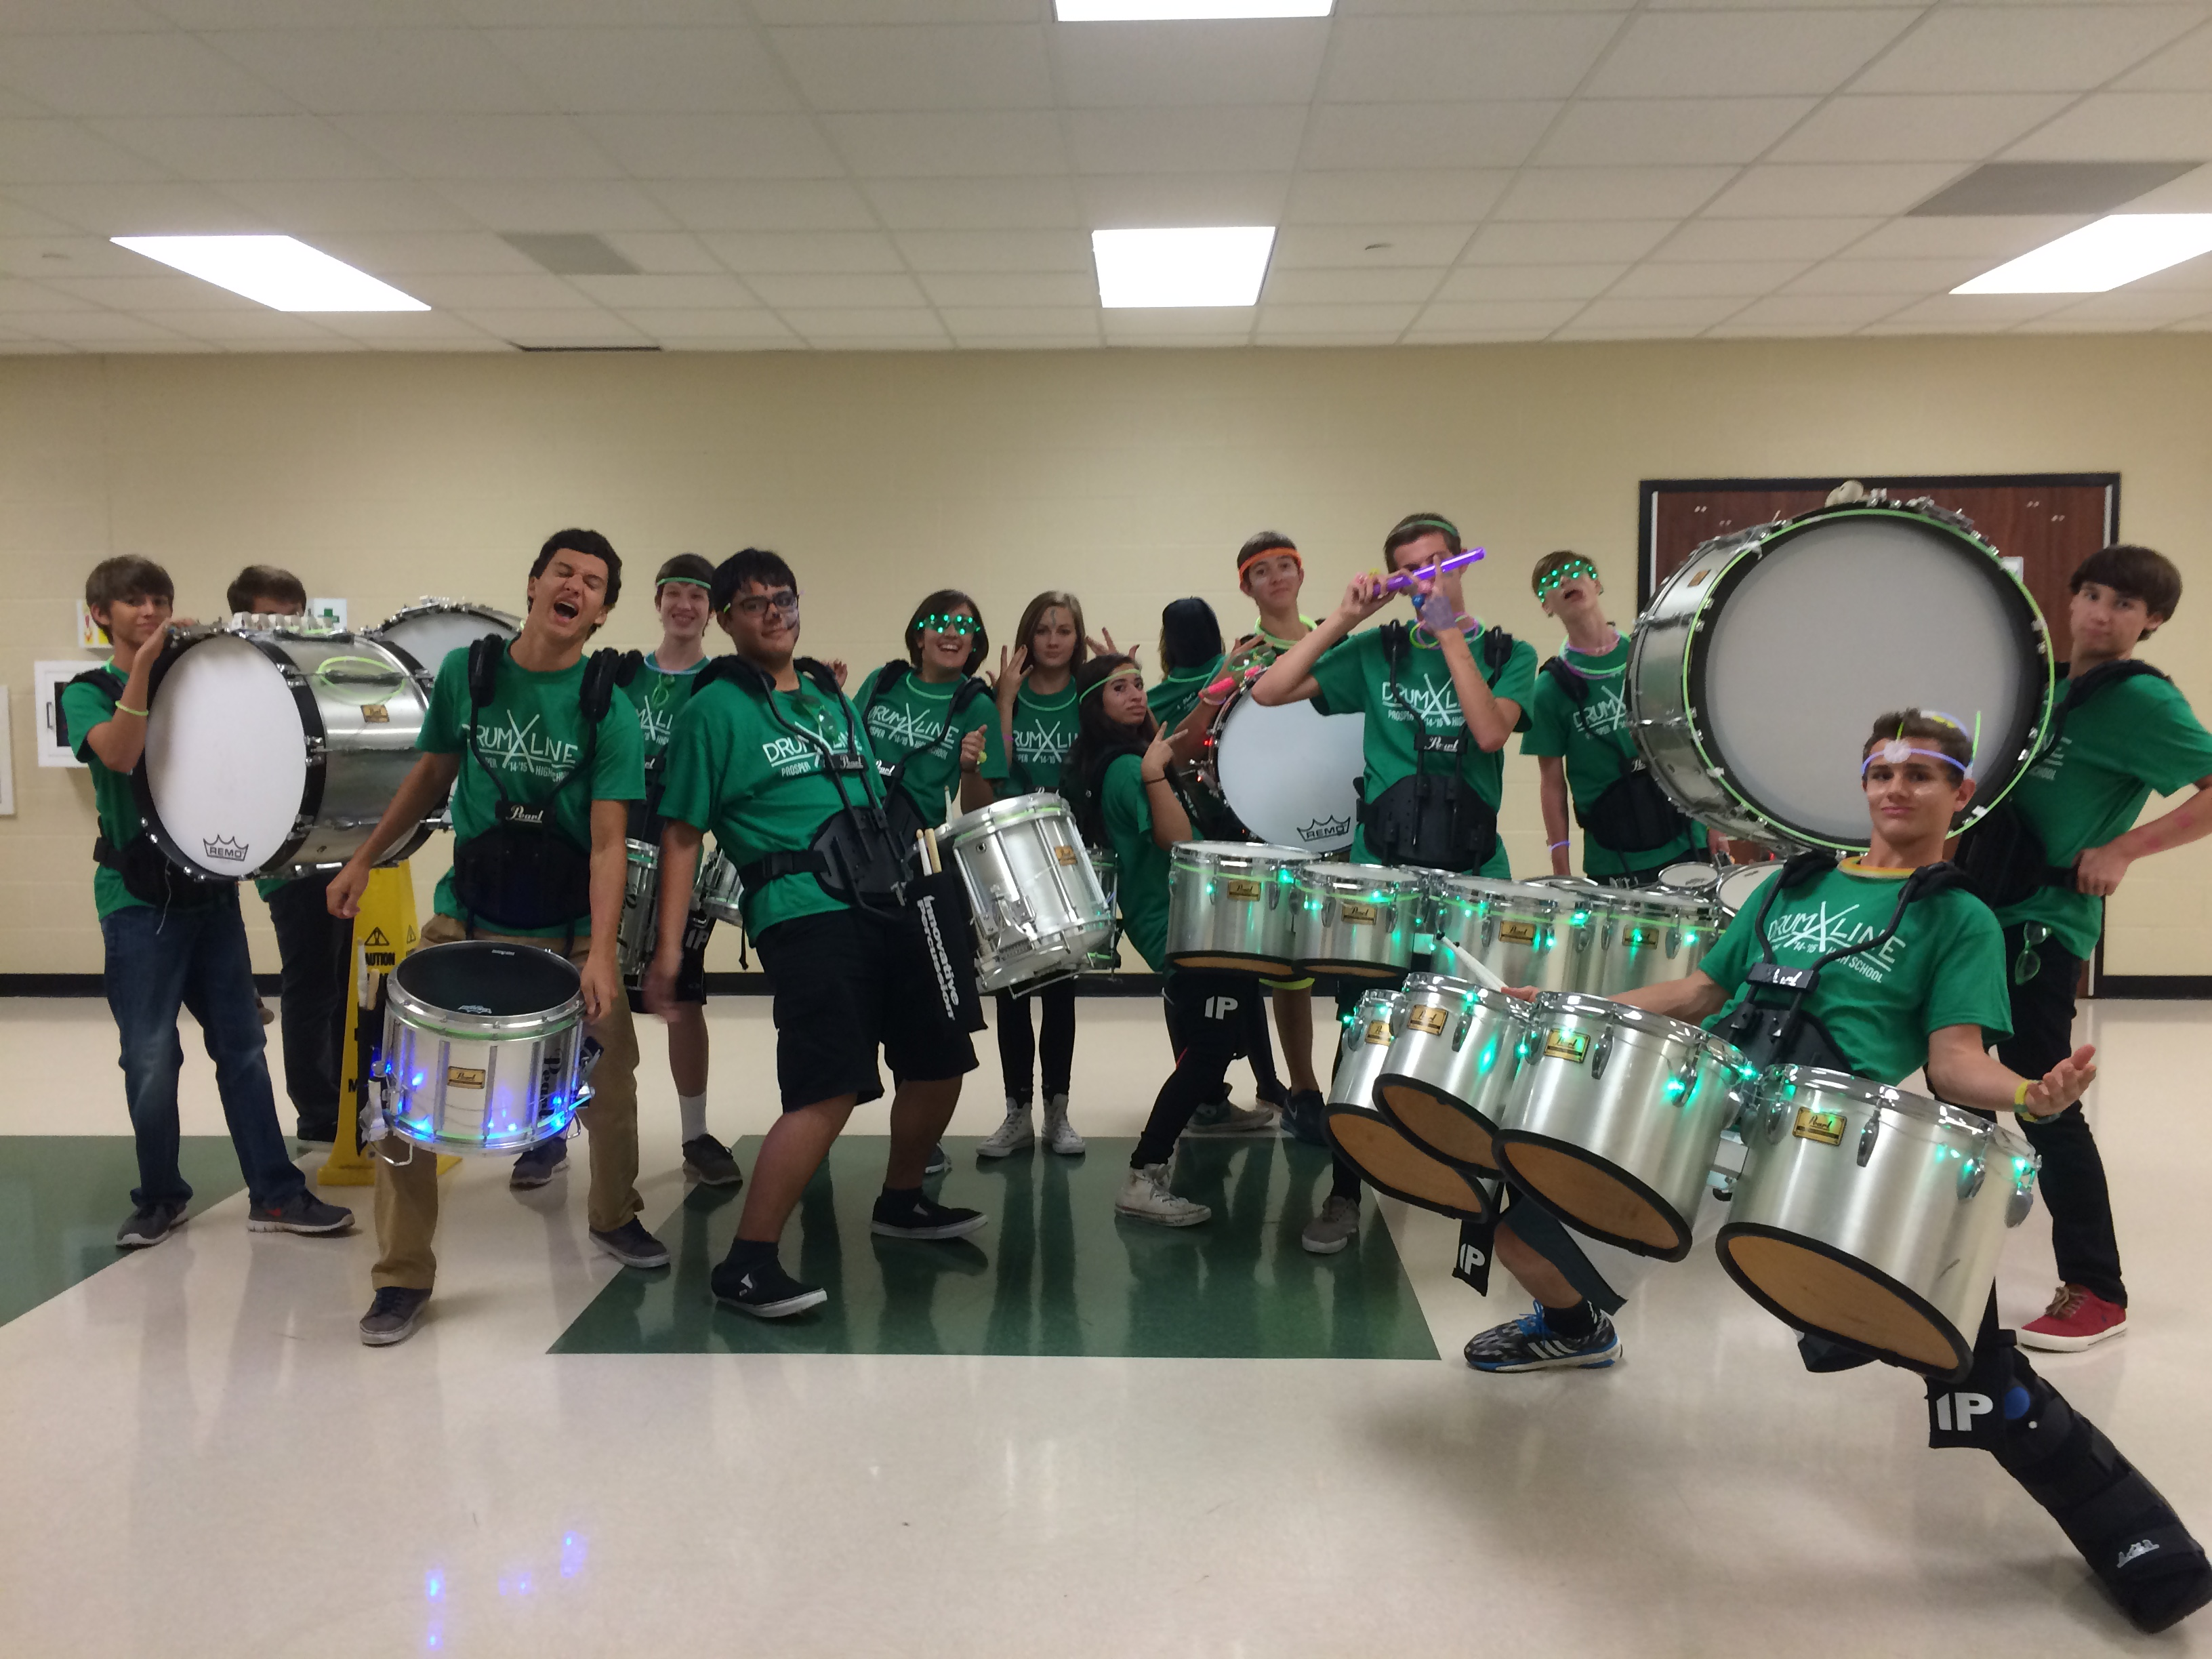 Drumline T-shirt Design Ideas and Inspiring Photos for Your Group